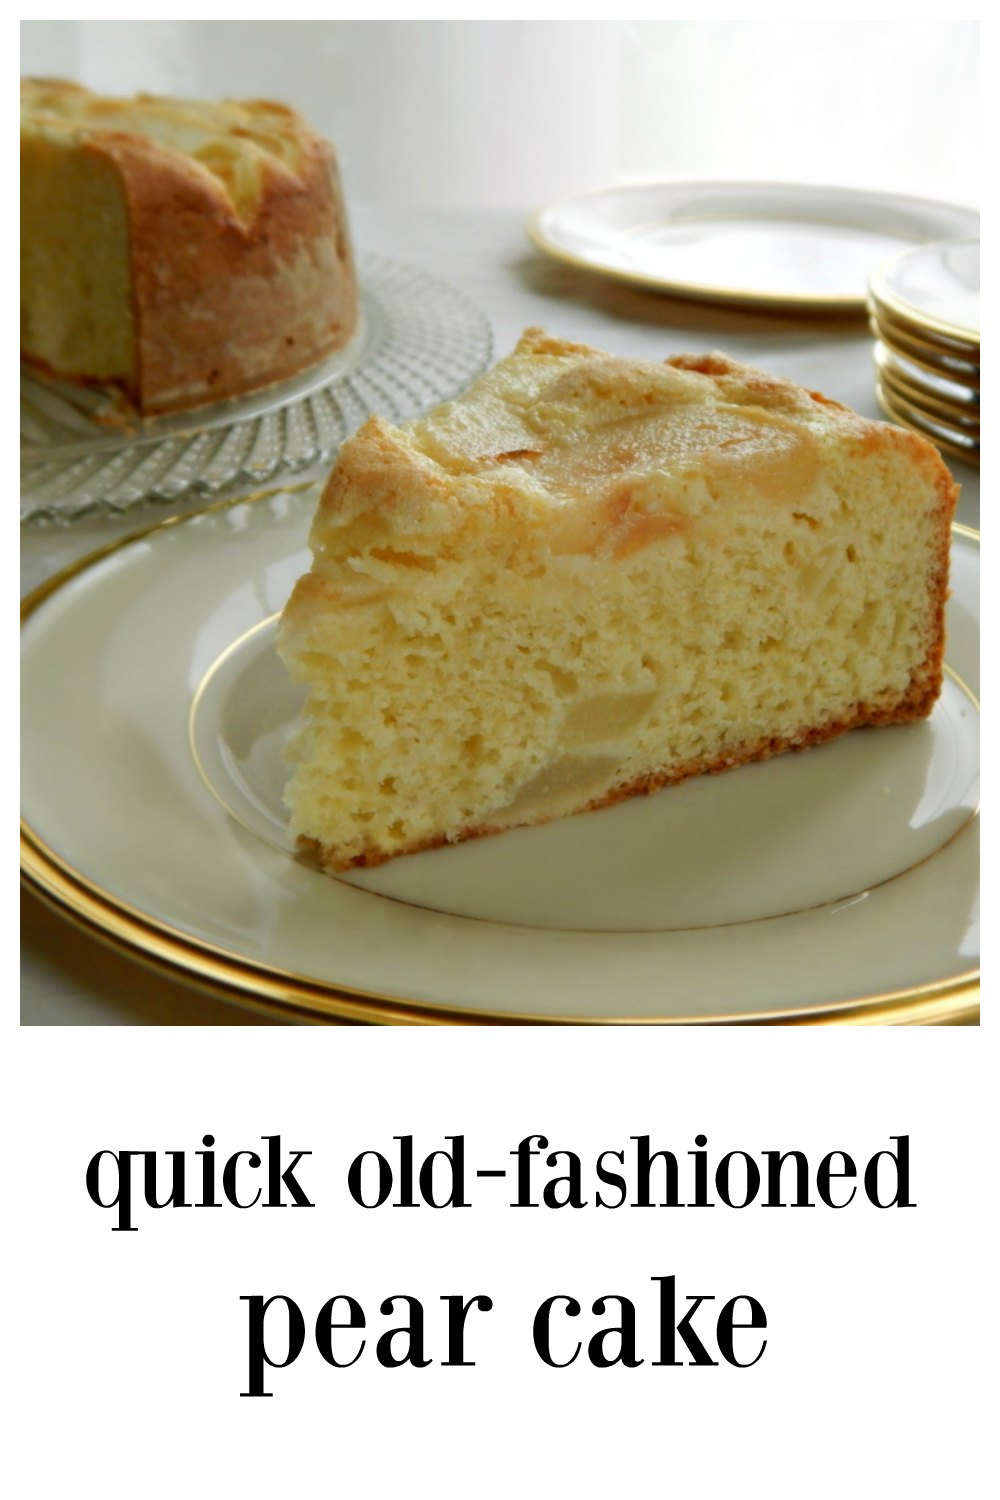 Quick Old-Fashioned Pear Cake is sturdy enough to eat out of hand for a snack and perfect for a not too sweet ending of a casual dinner party. Easy to make and so delish! #PearCake #QuickPearCake #PearSnackCake